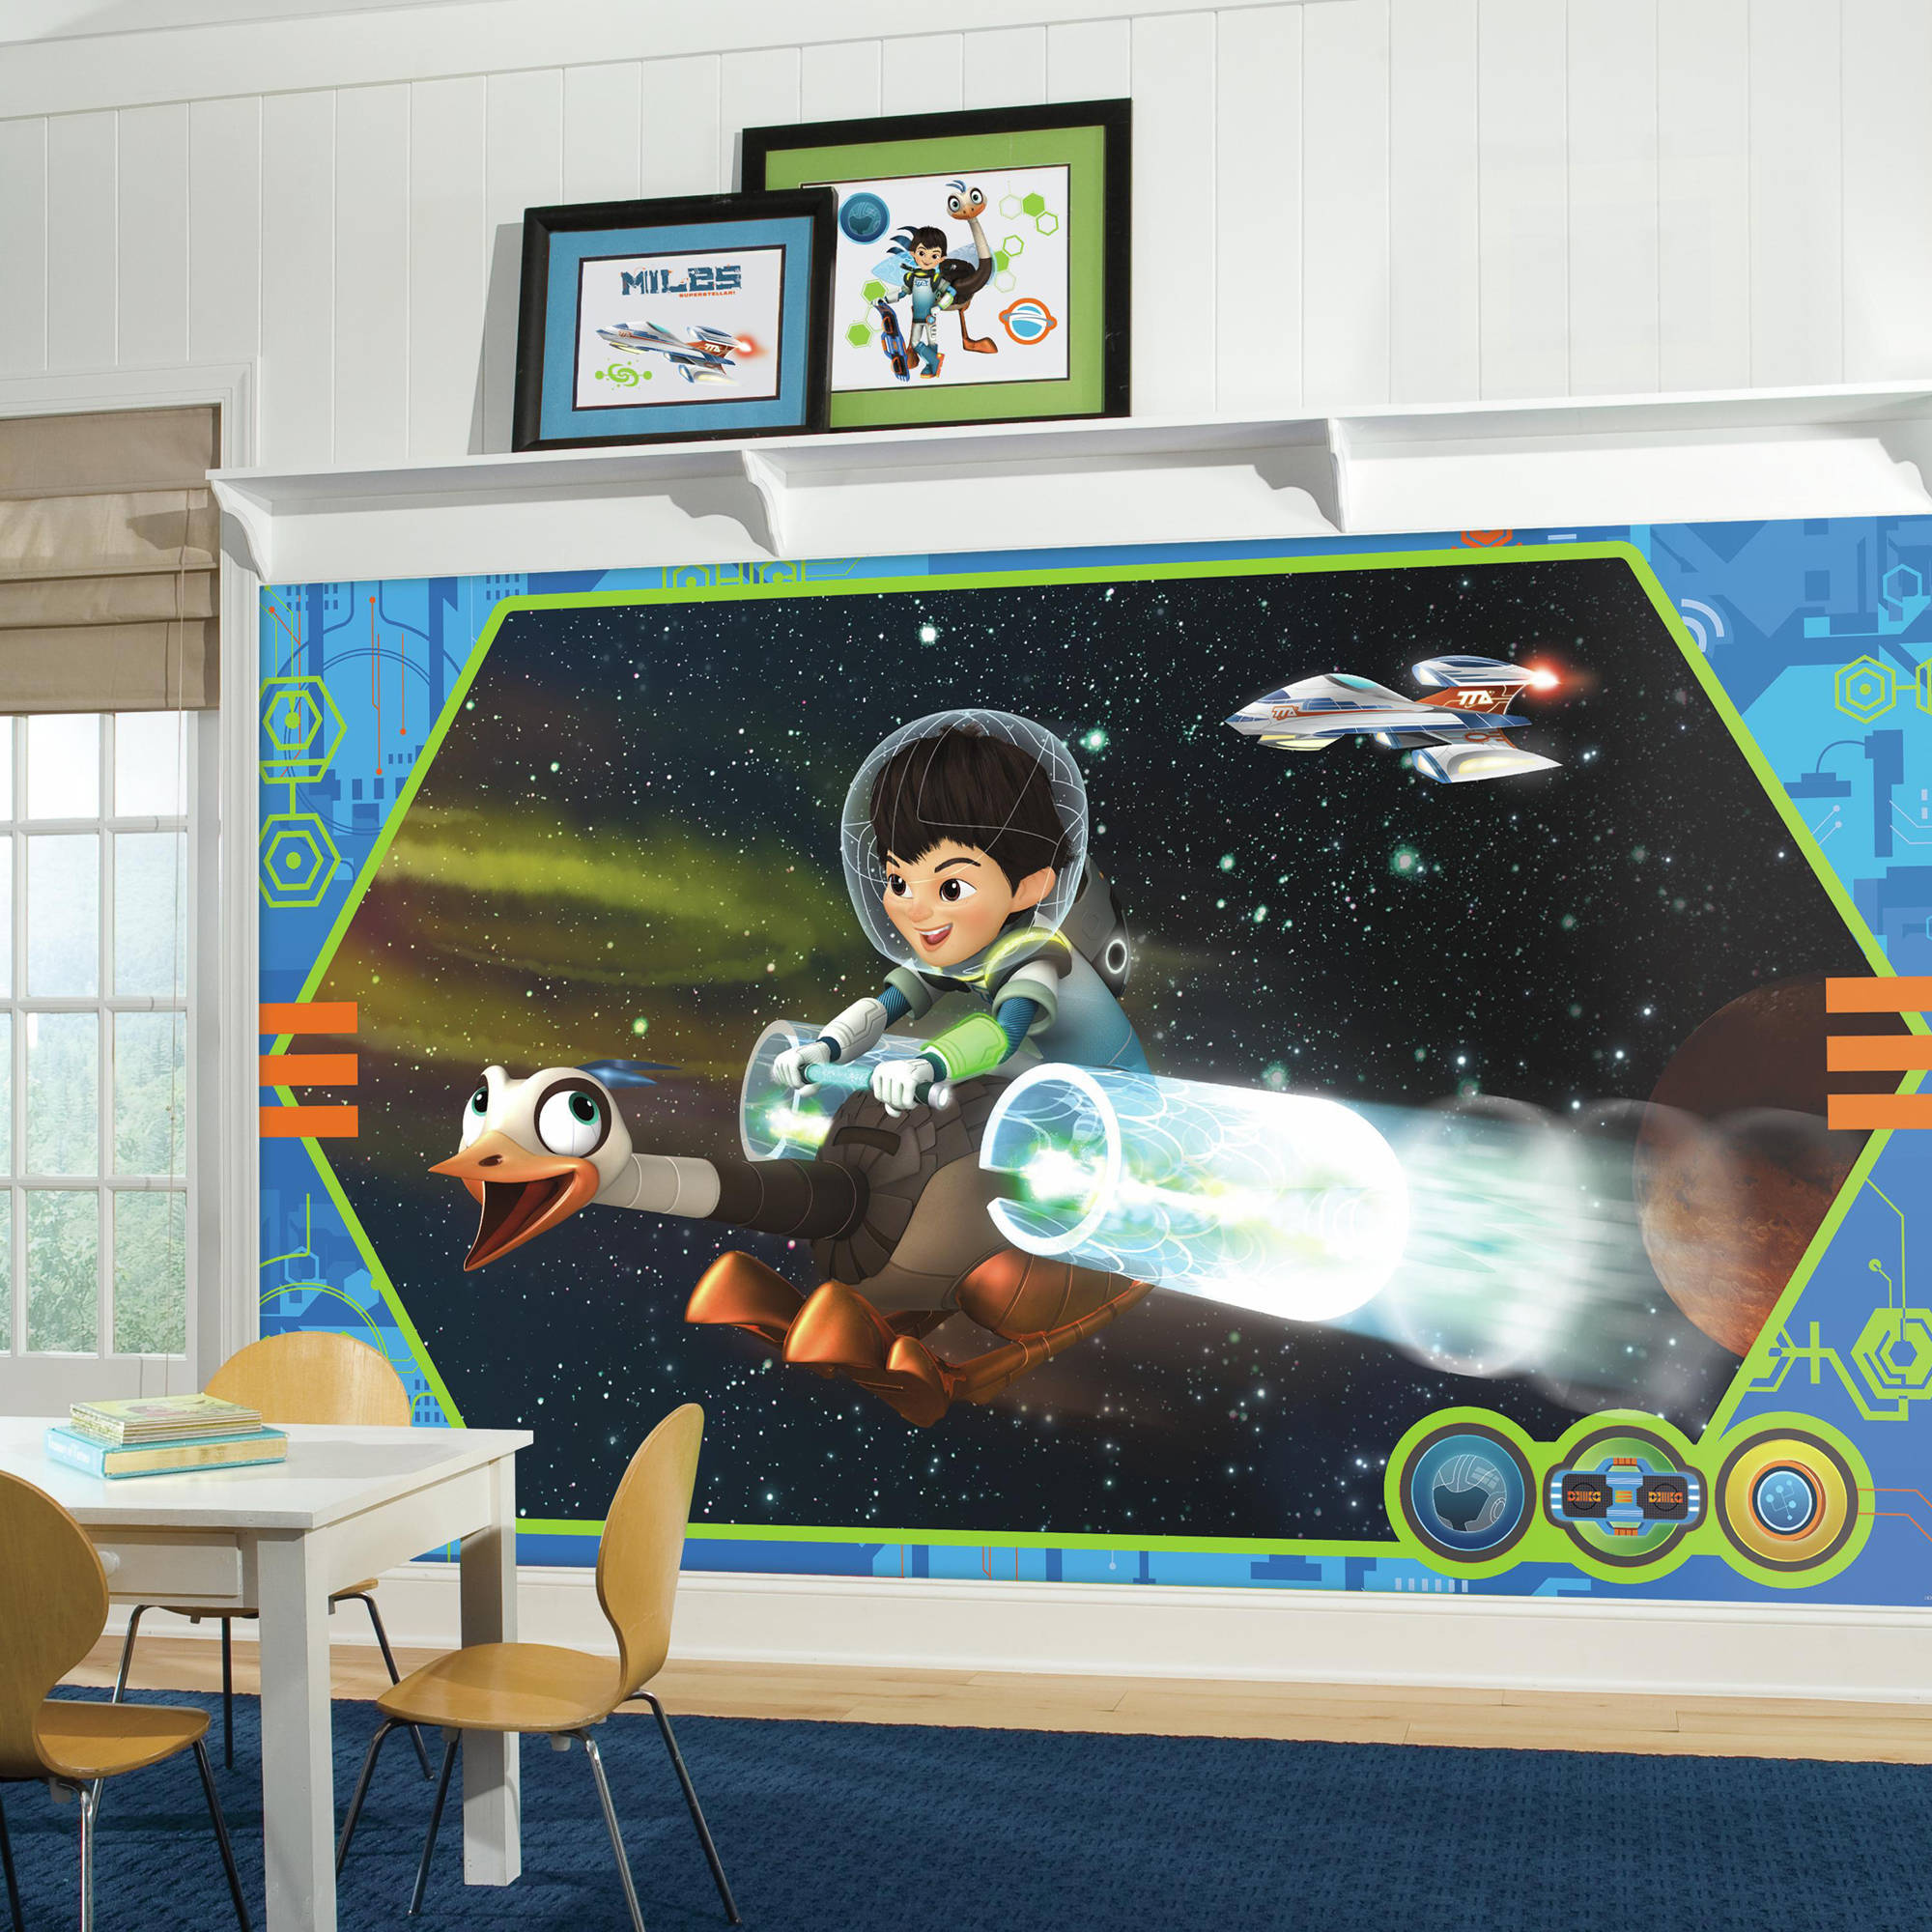 RoomMates Miles From Tomorrowland XL Chair Rail Prepasted Ultra-Strippable Mural, 6' x 10.5'